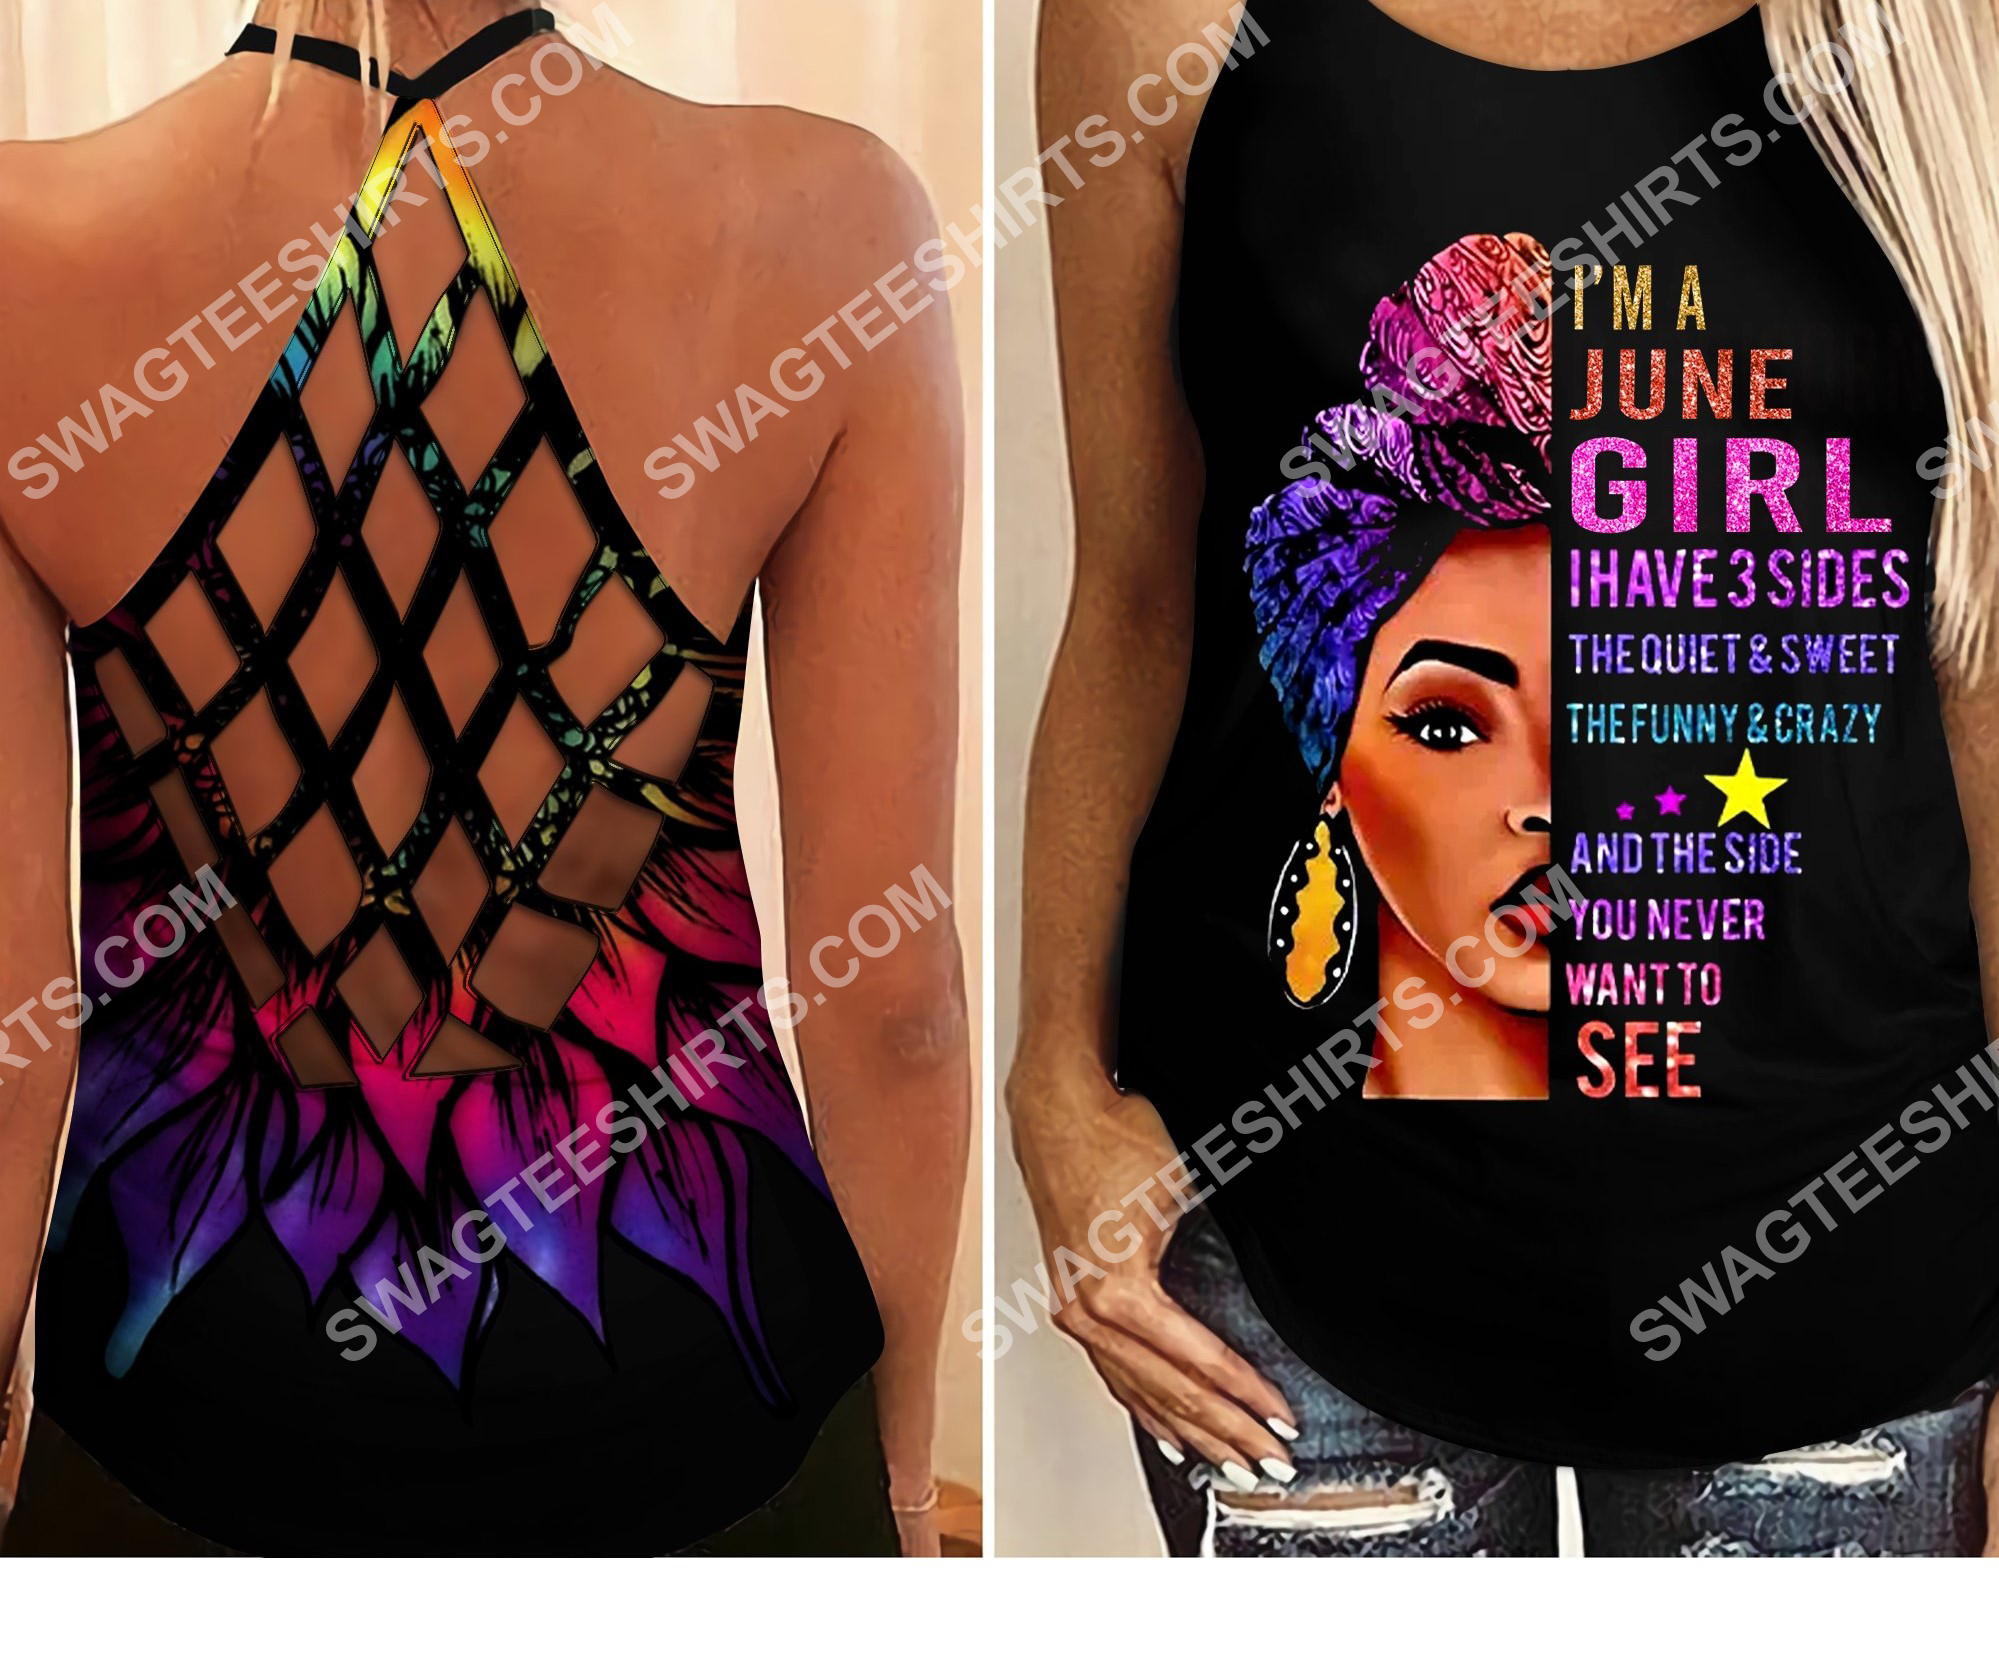 i'm a june girl i have 3 sides the quiet and sweet all over printed criss-cross tank top 2 - Copy (3)